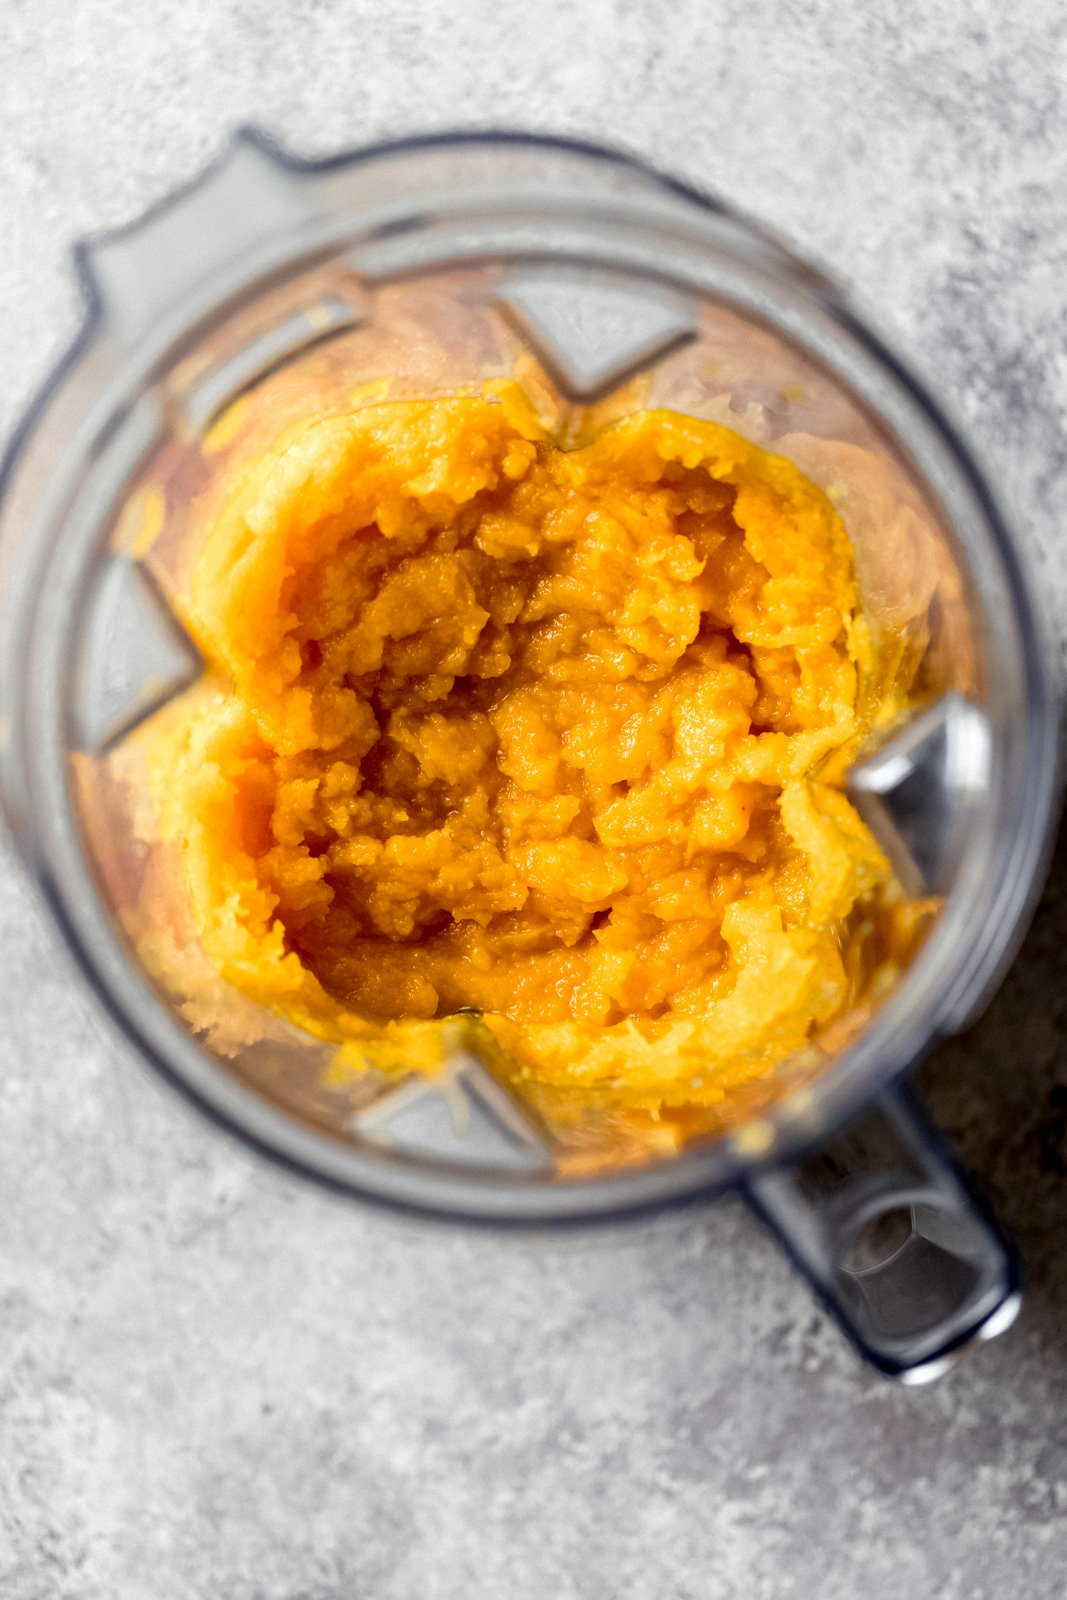 homemade pumpkin puree in a blender